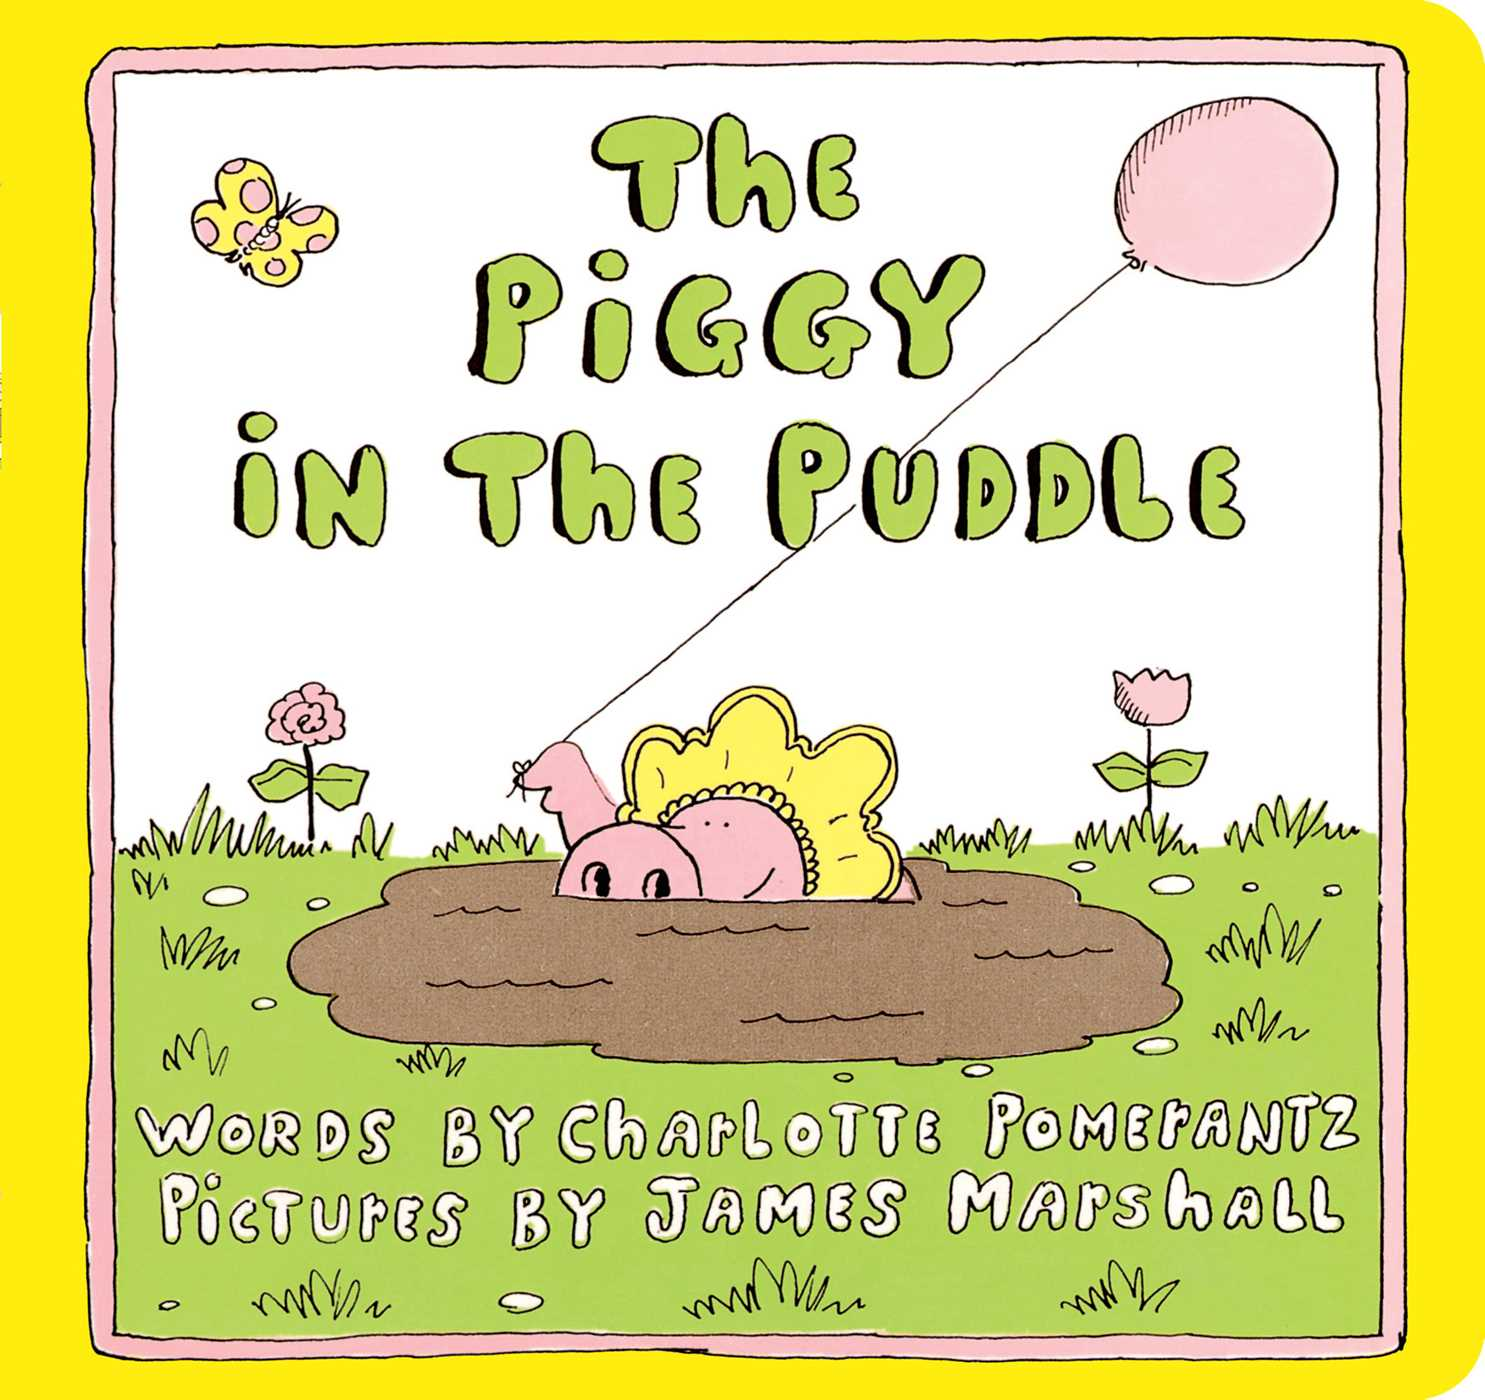 The piggy in the puddle 9781534406612 hr